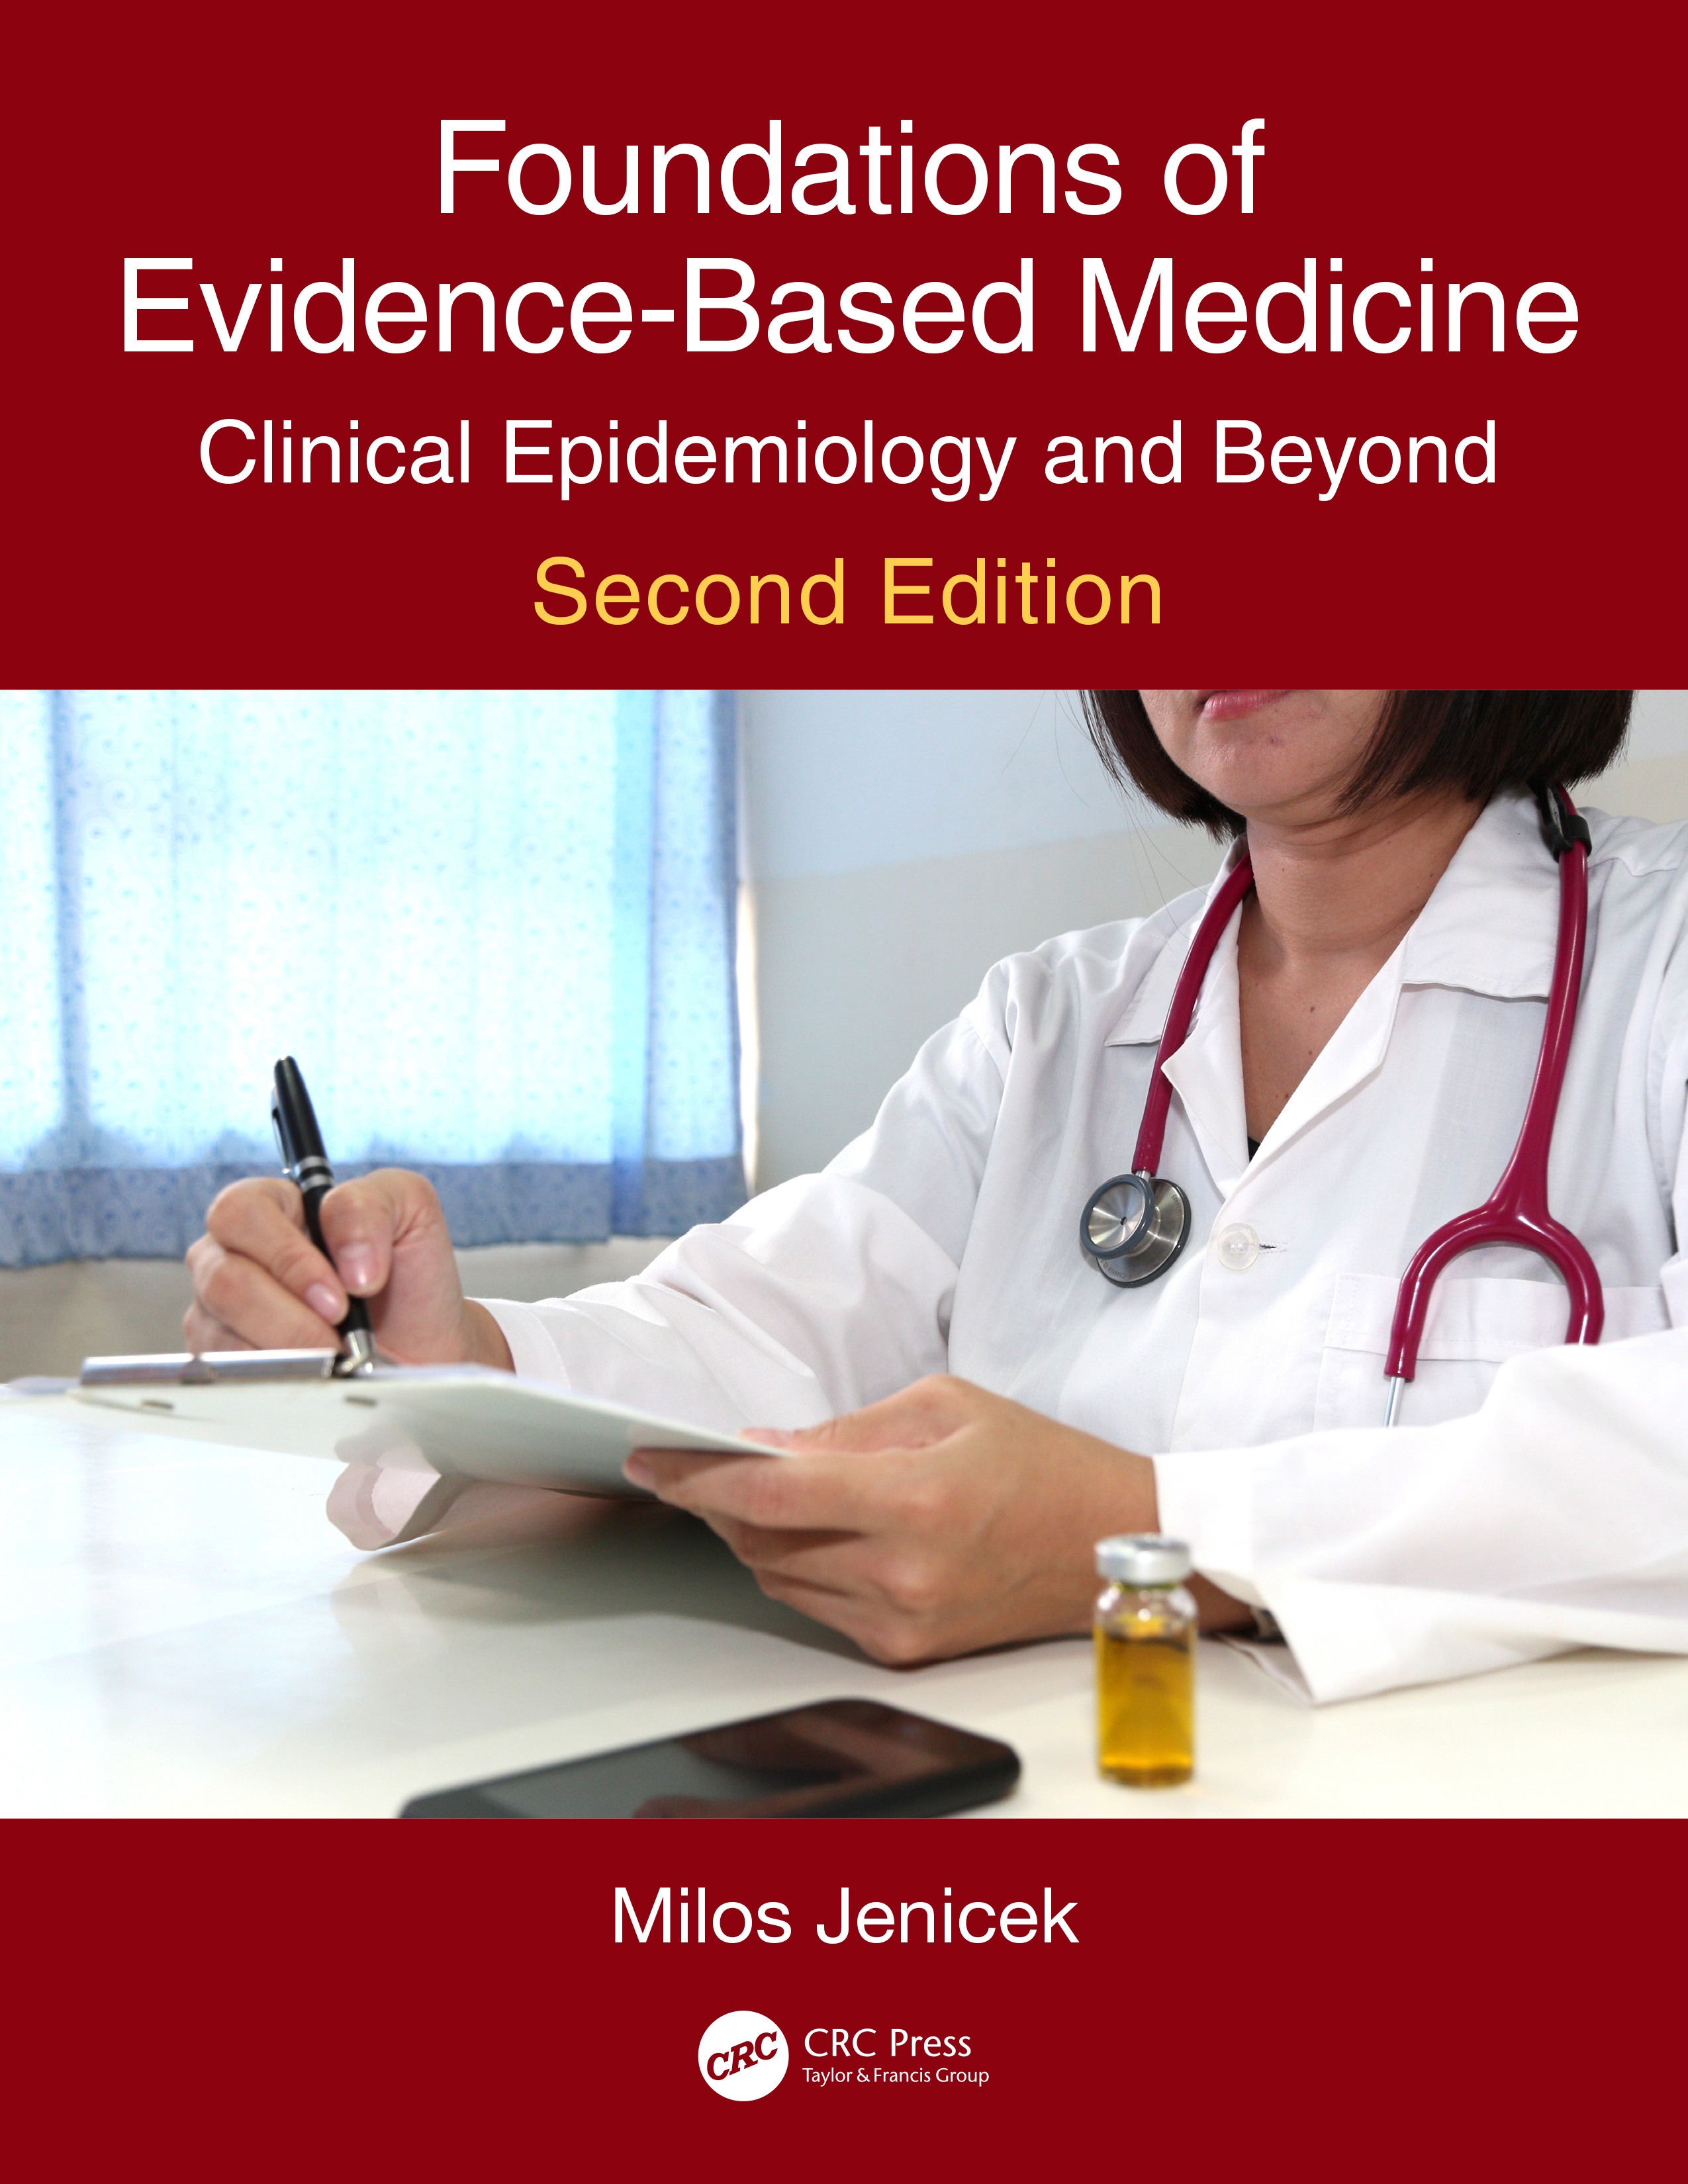 Foundations of Evidence-Based Medicine: Clinical Epidemiology and Beyond, Second Edition book cover